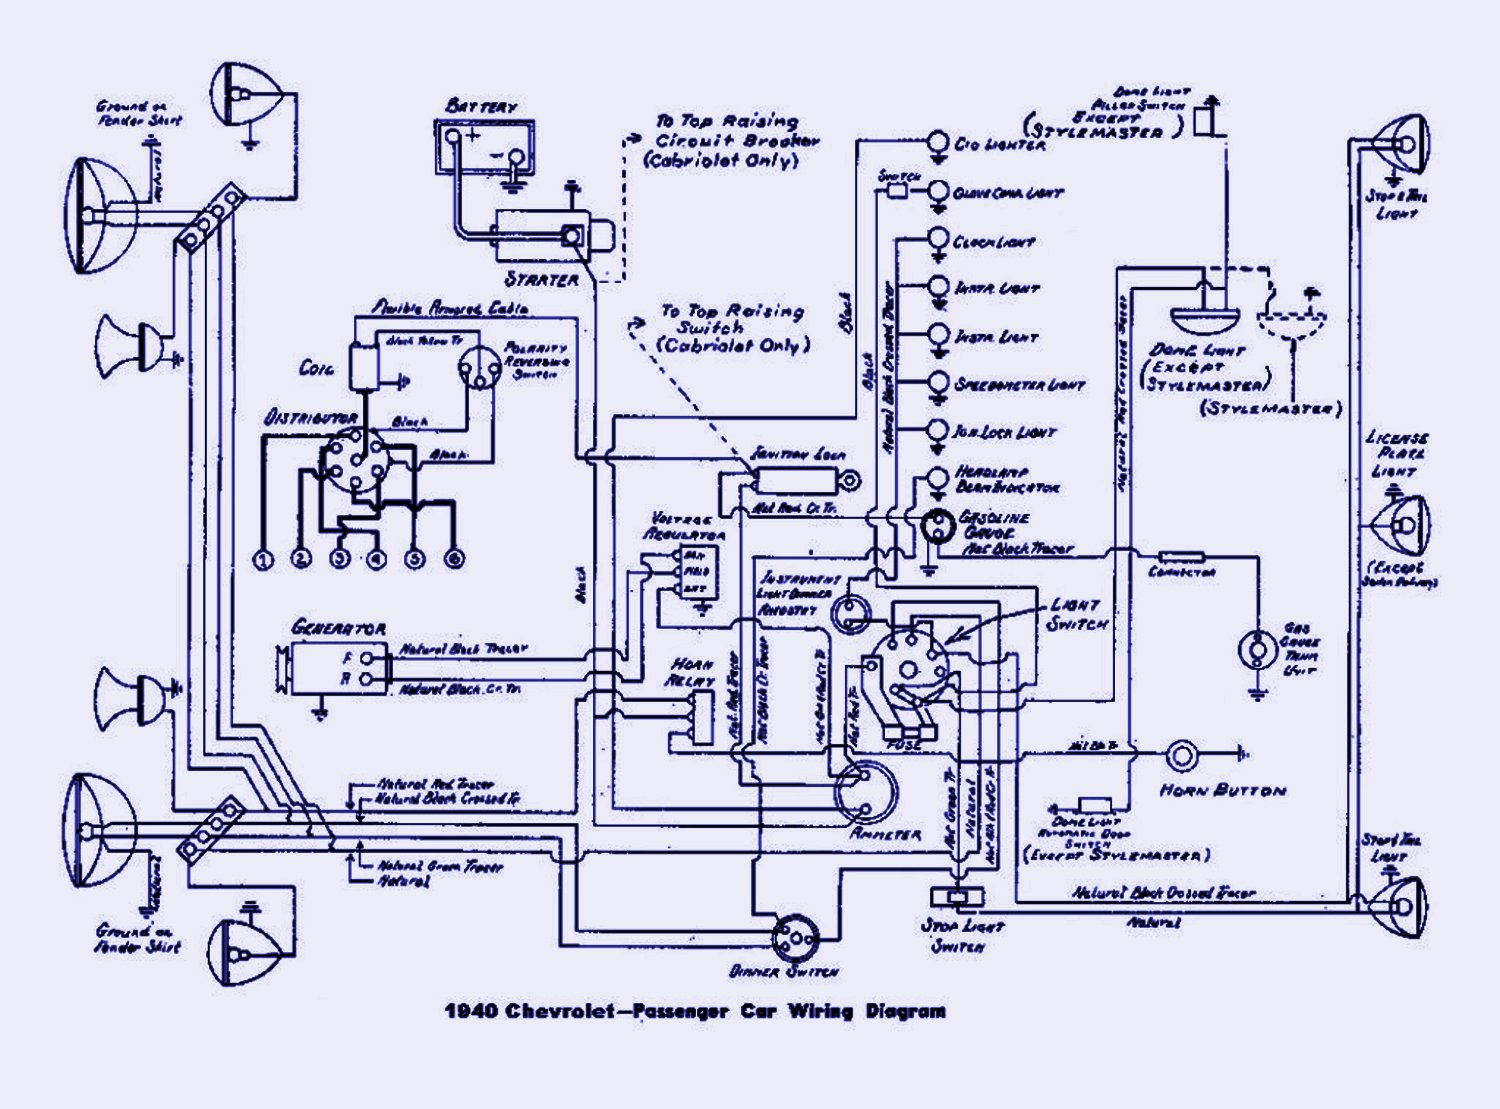 1940 chevrolet wiring diagram full version hd quality wiring diagram -  tonydiagram.hotelsynodal.fr  diagram database